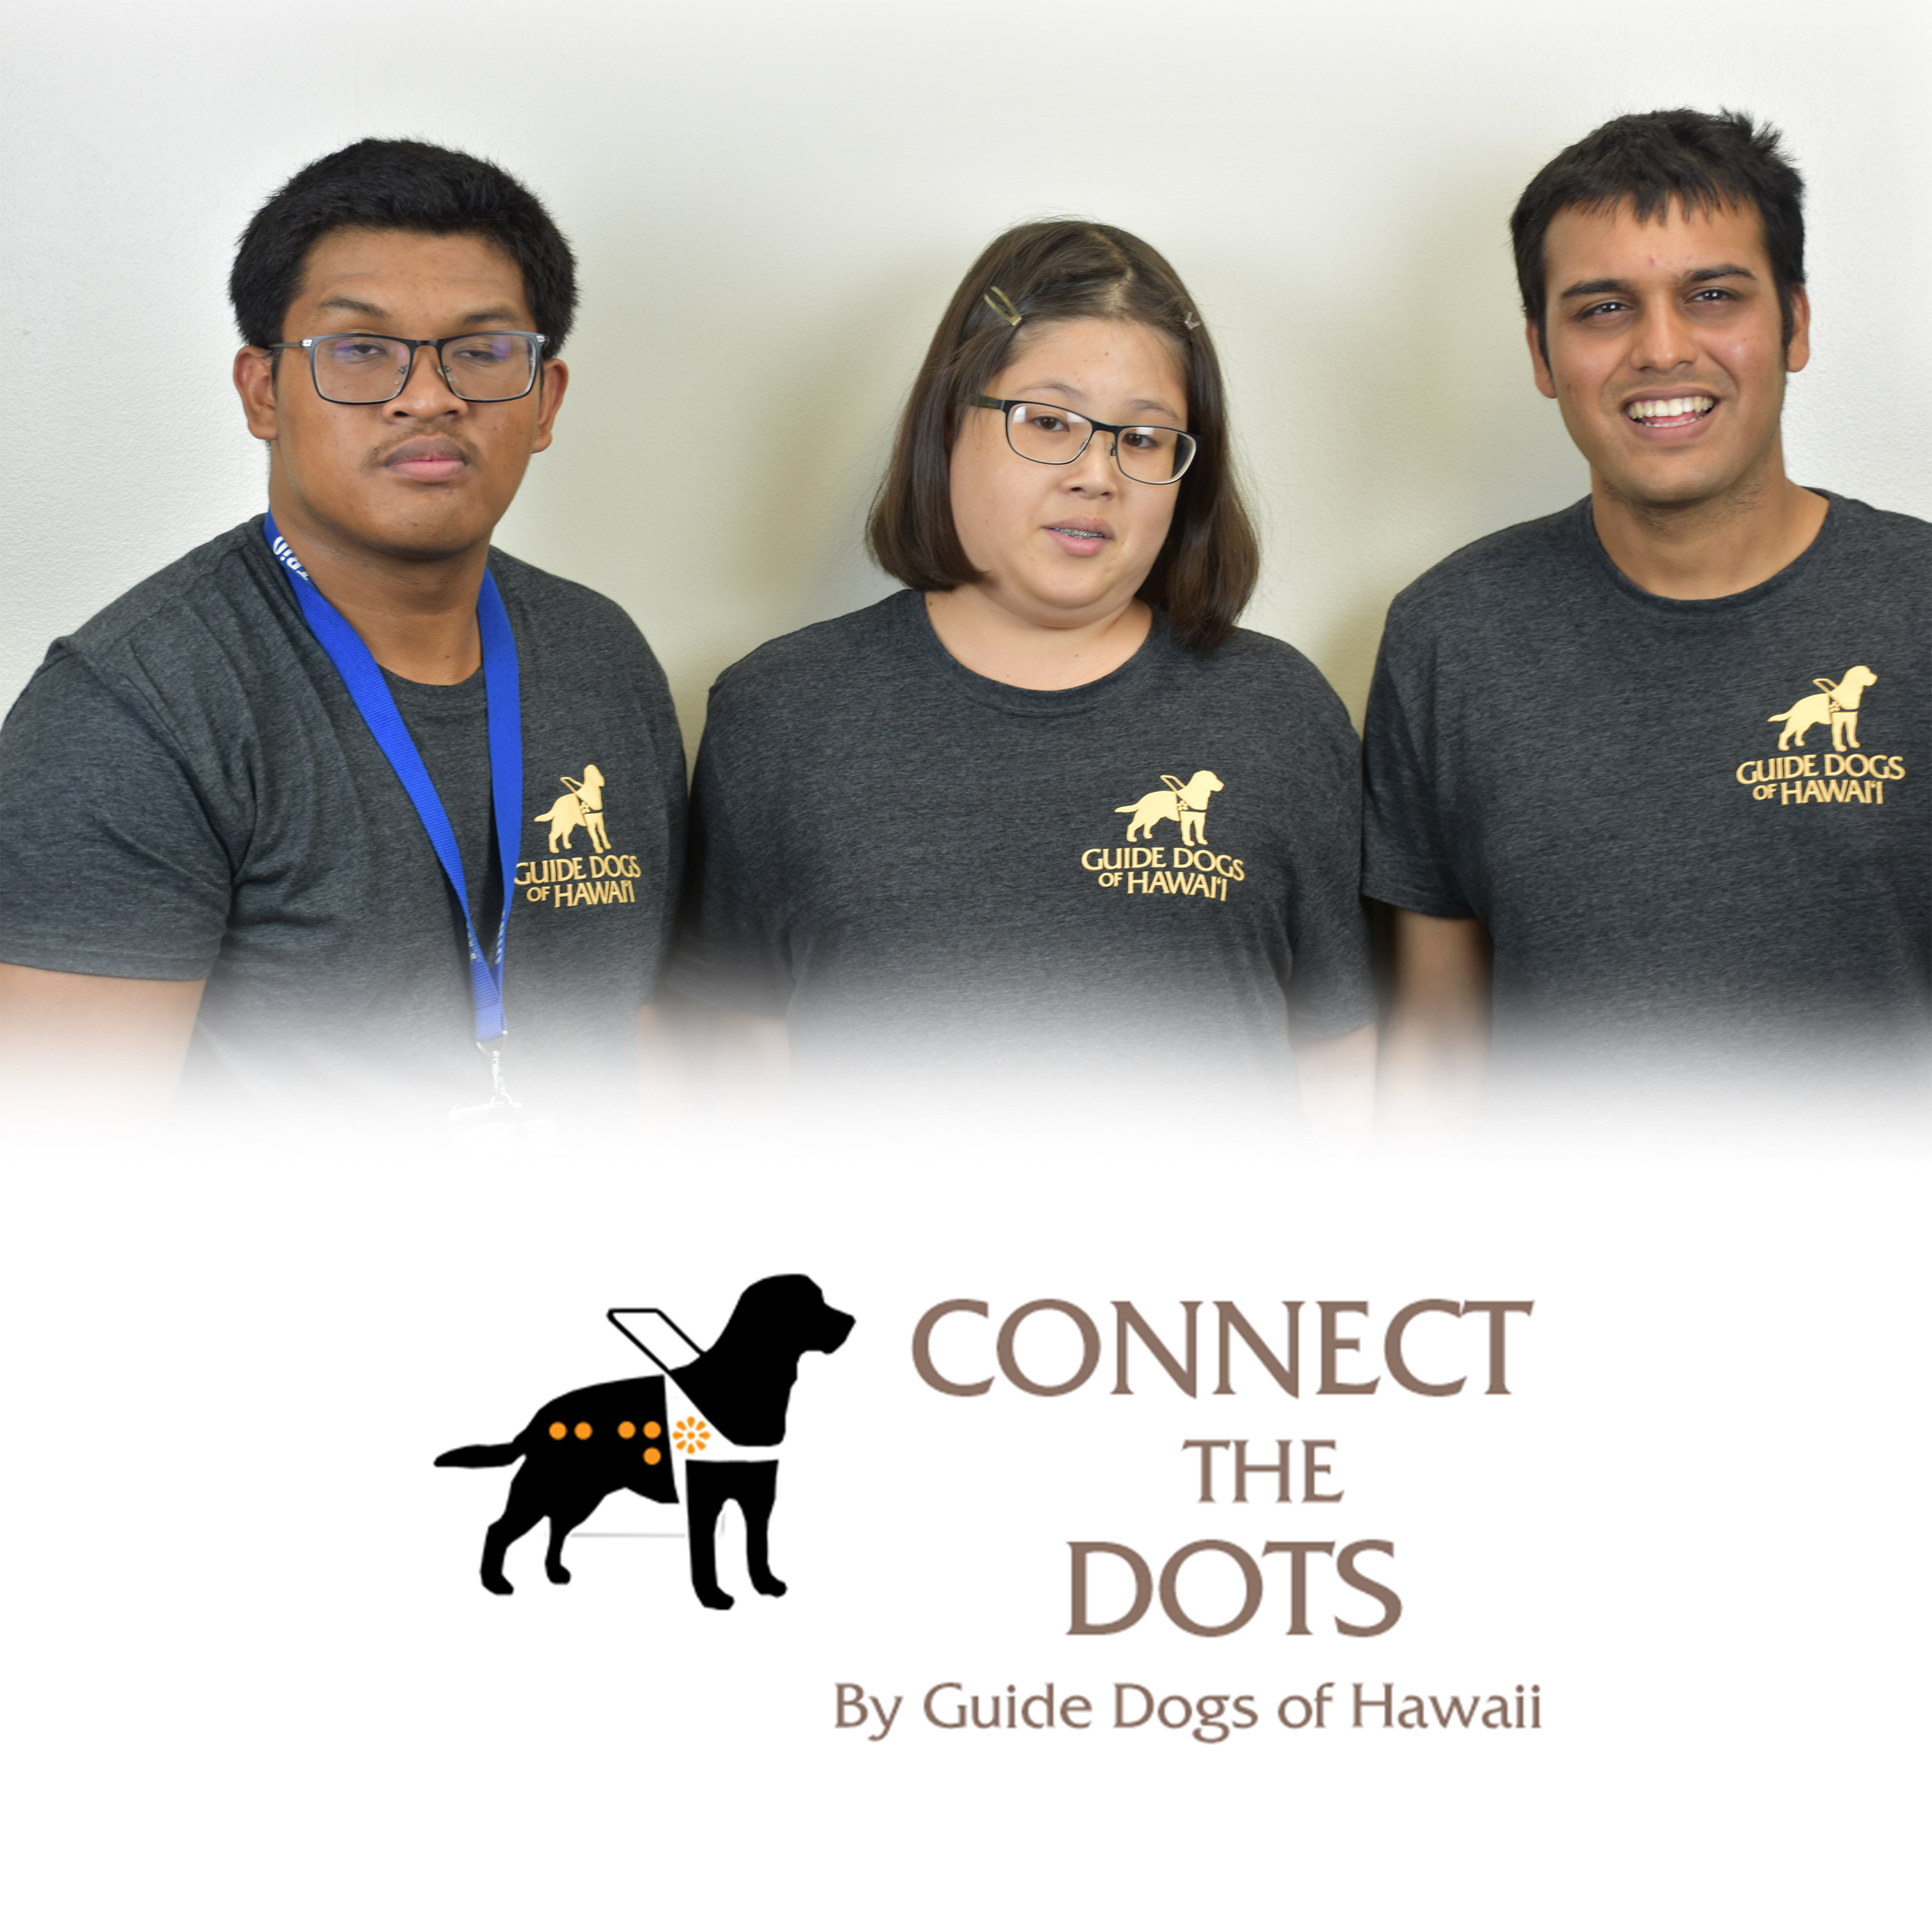 Connect the Dots by Guide Dogs of Hawaii